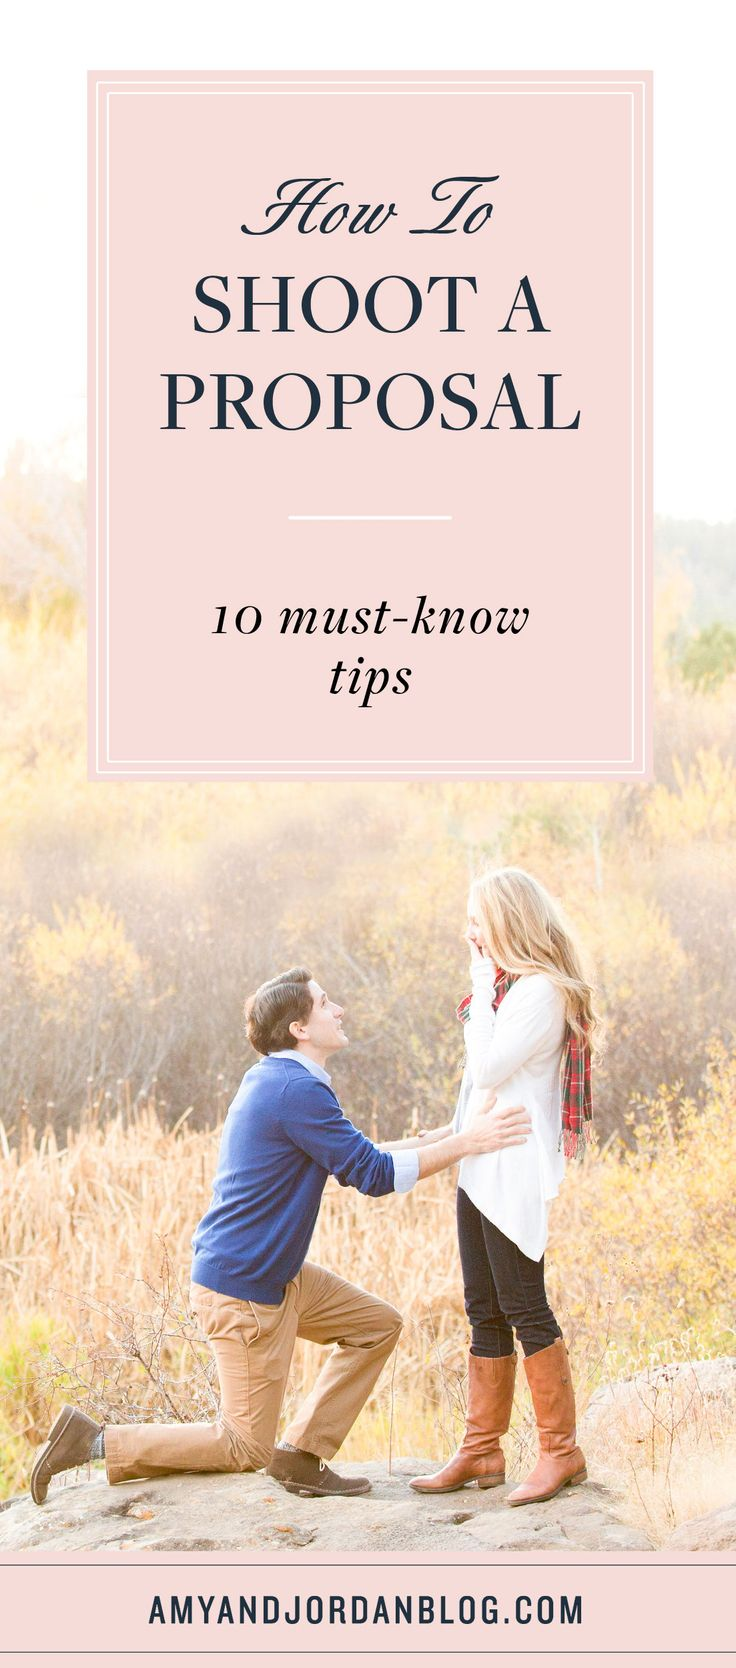 Does the thought of photographing a proposal scare you? We've got the secrets to ensure you succeed in any proposal situation. We're sharing our 10 must-know tips for photographing a proposal